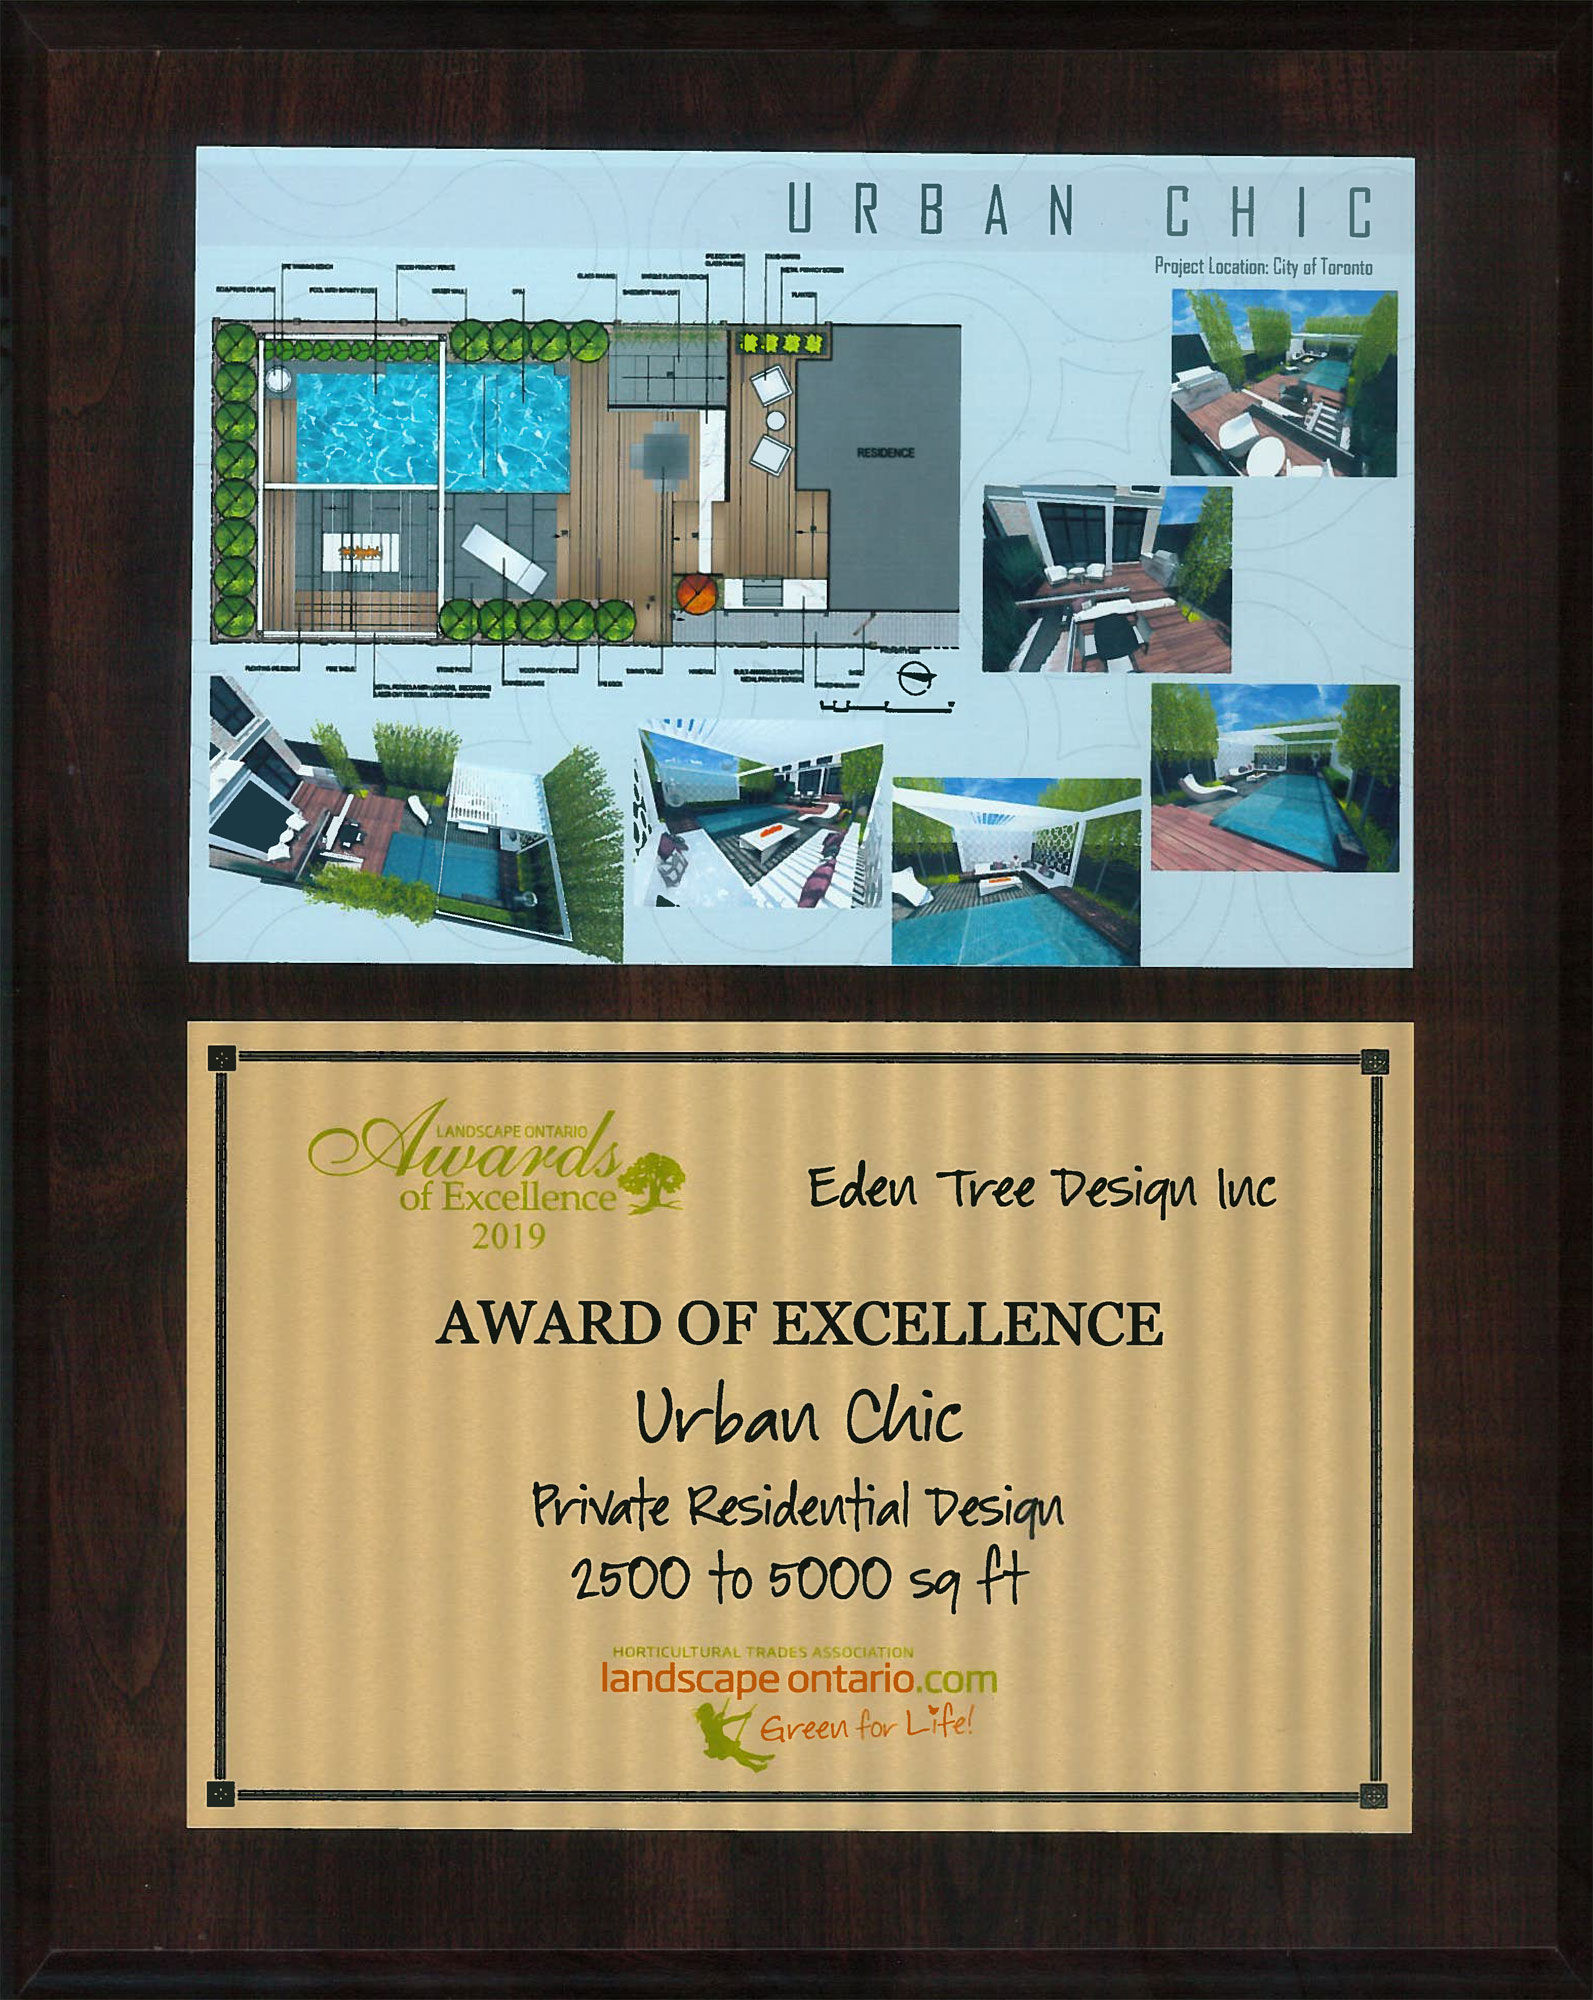 Landscape Ontario Award of Excellence 2019Private Residential Design 2500 to 5000 sq. ft. - (see Urban Chic)